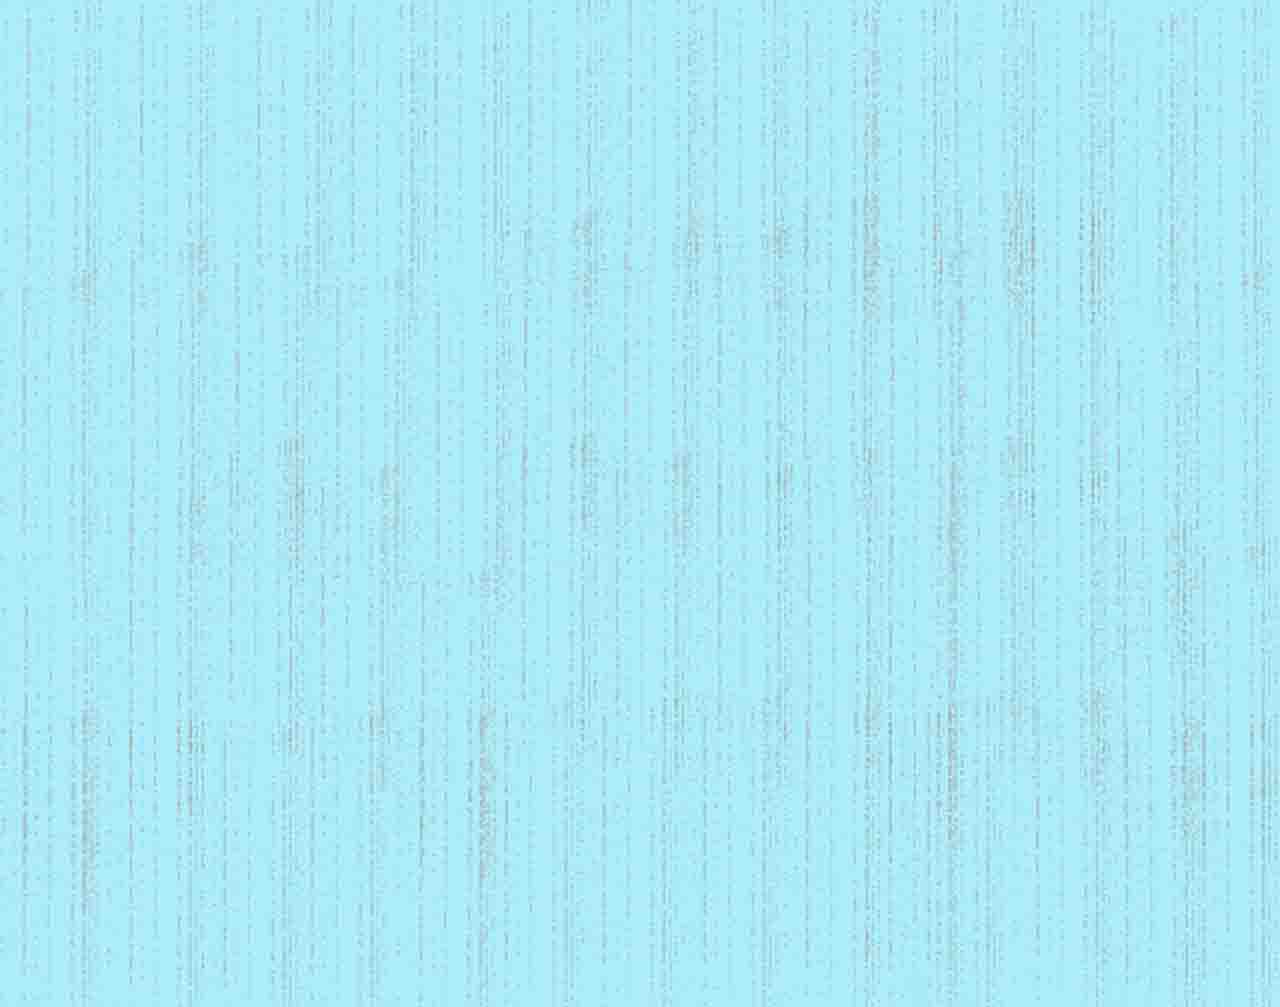 Shabby Blue Backgrounds